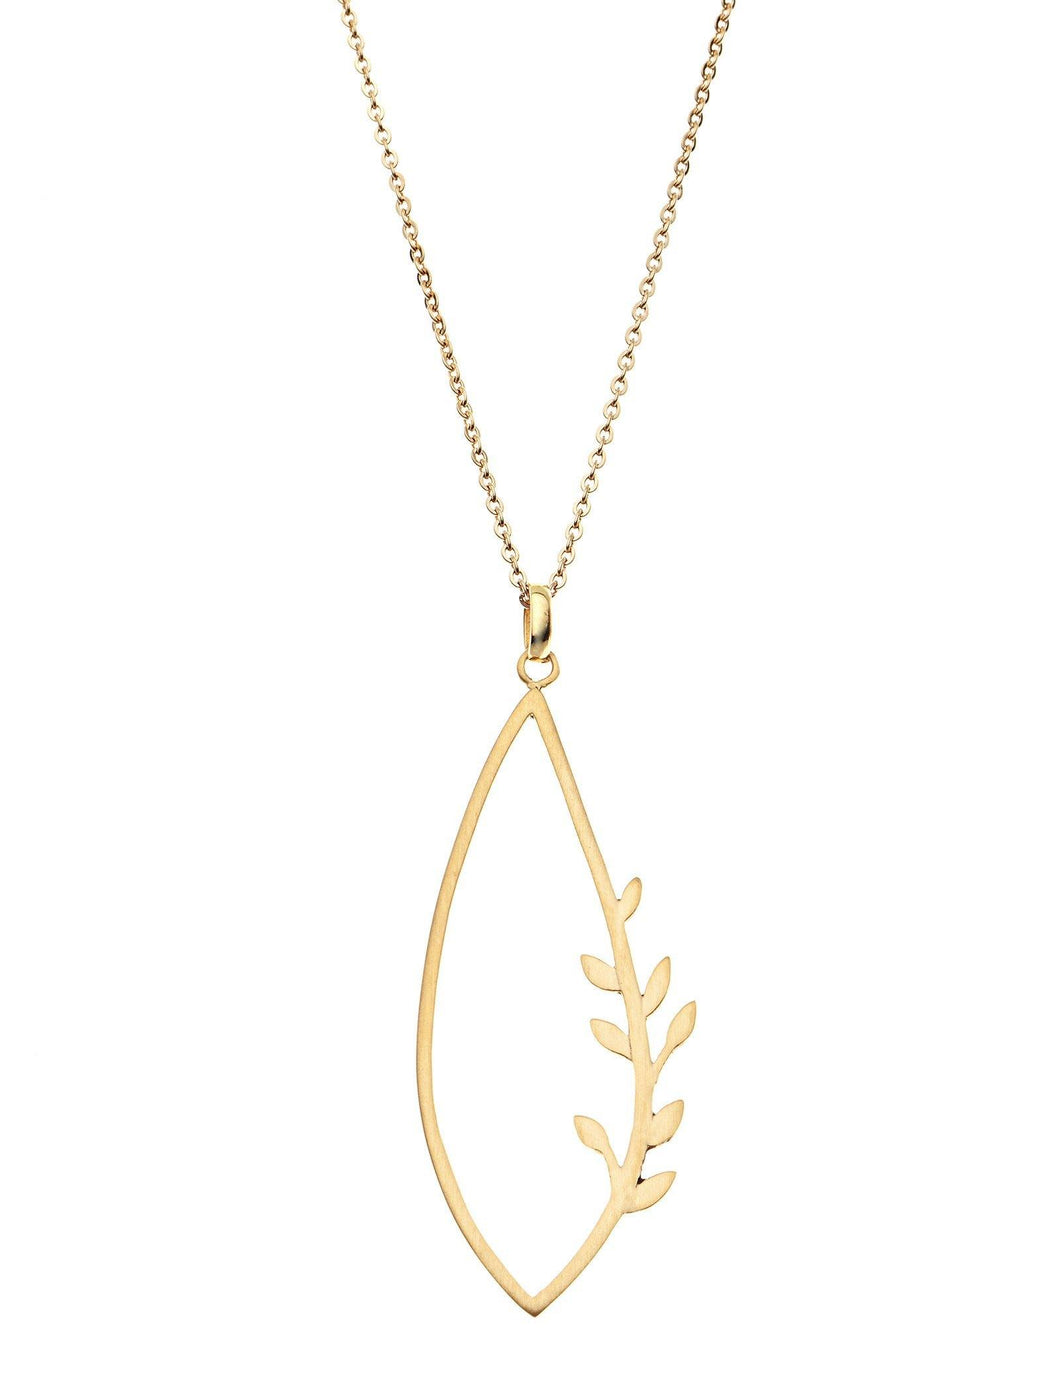 Enchanted Gold Necklace by Pastiche available at My Harley and Rose